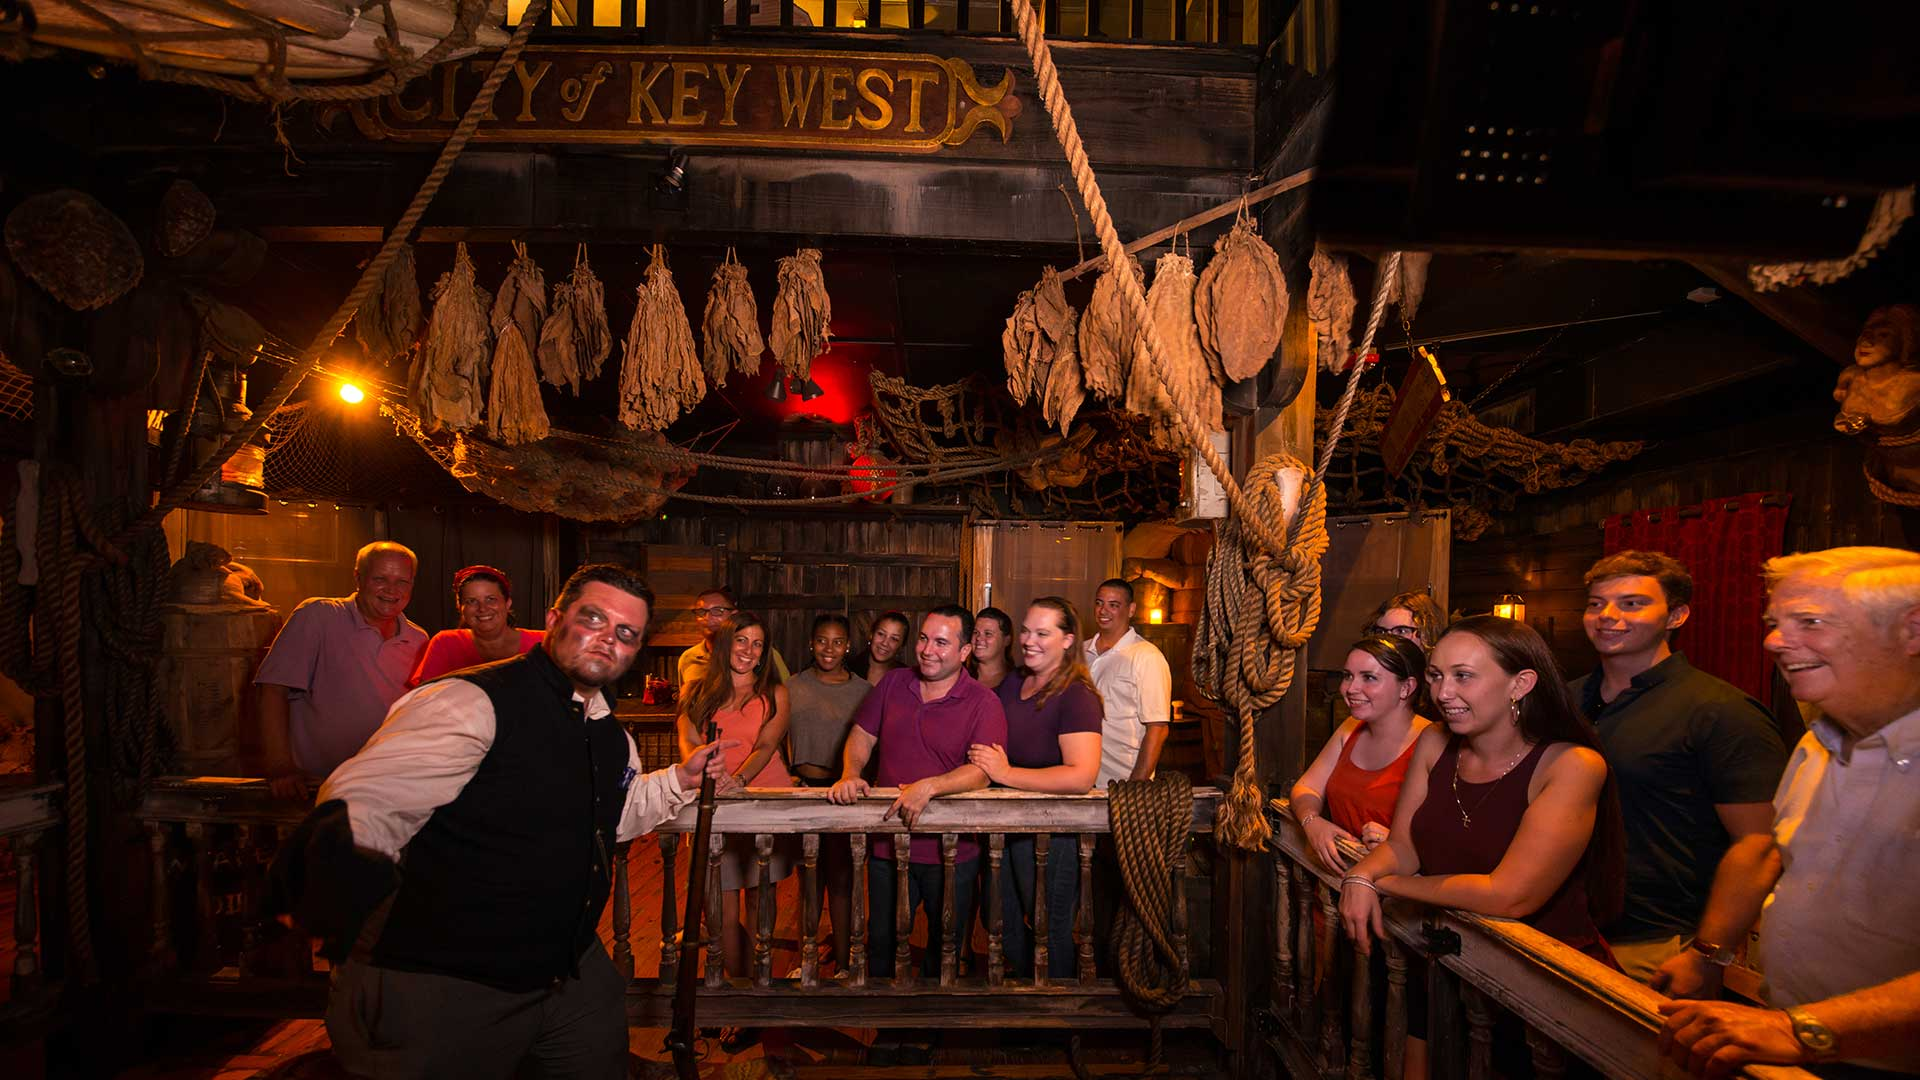 key west haunted tour in shipwreck museum